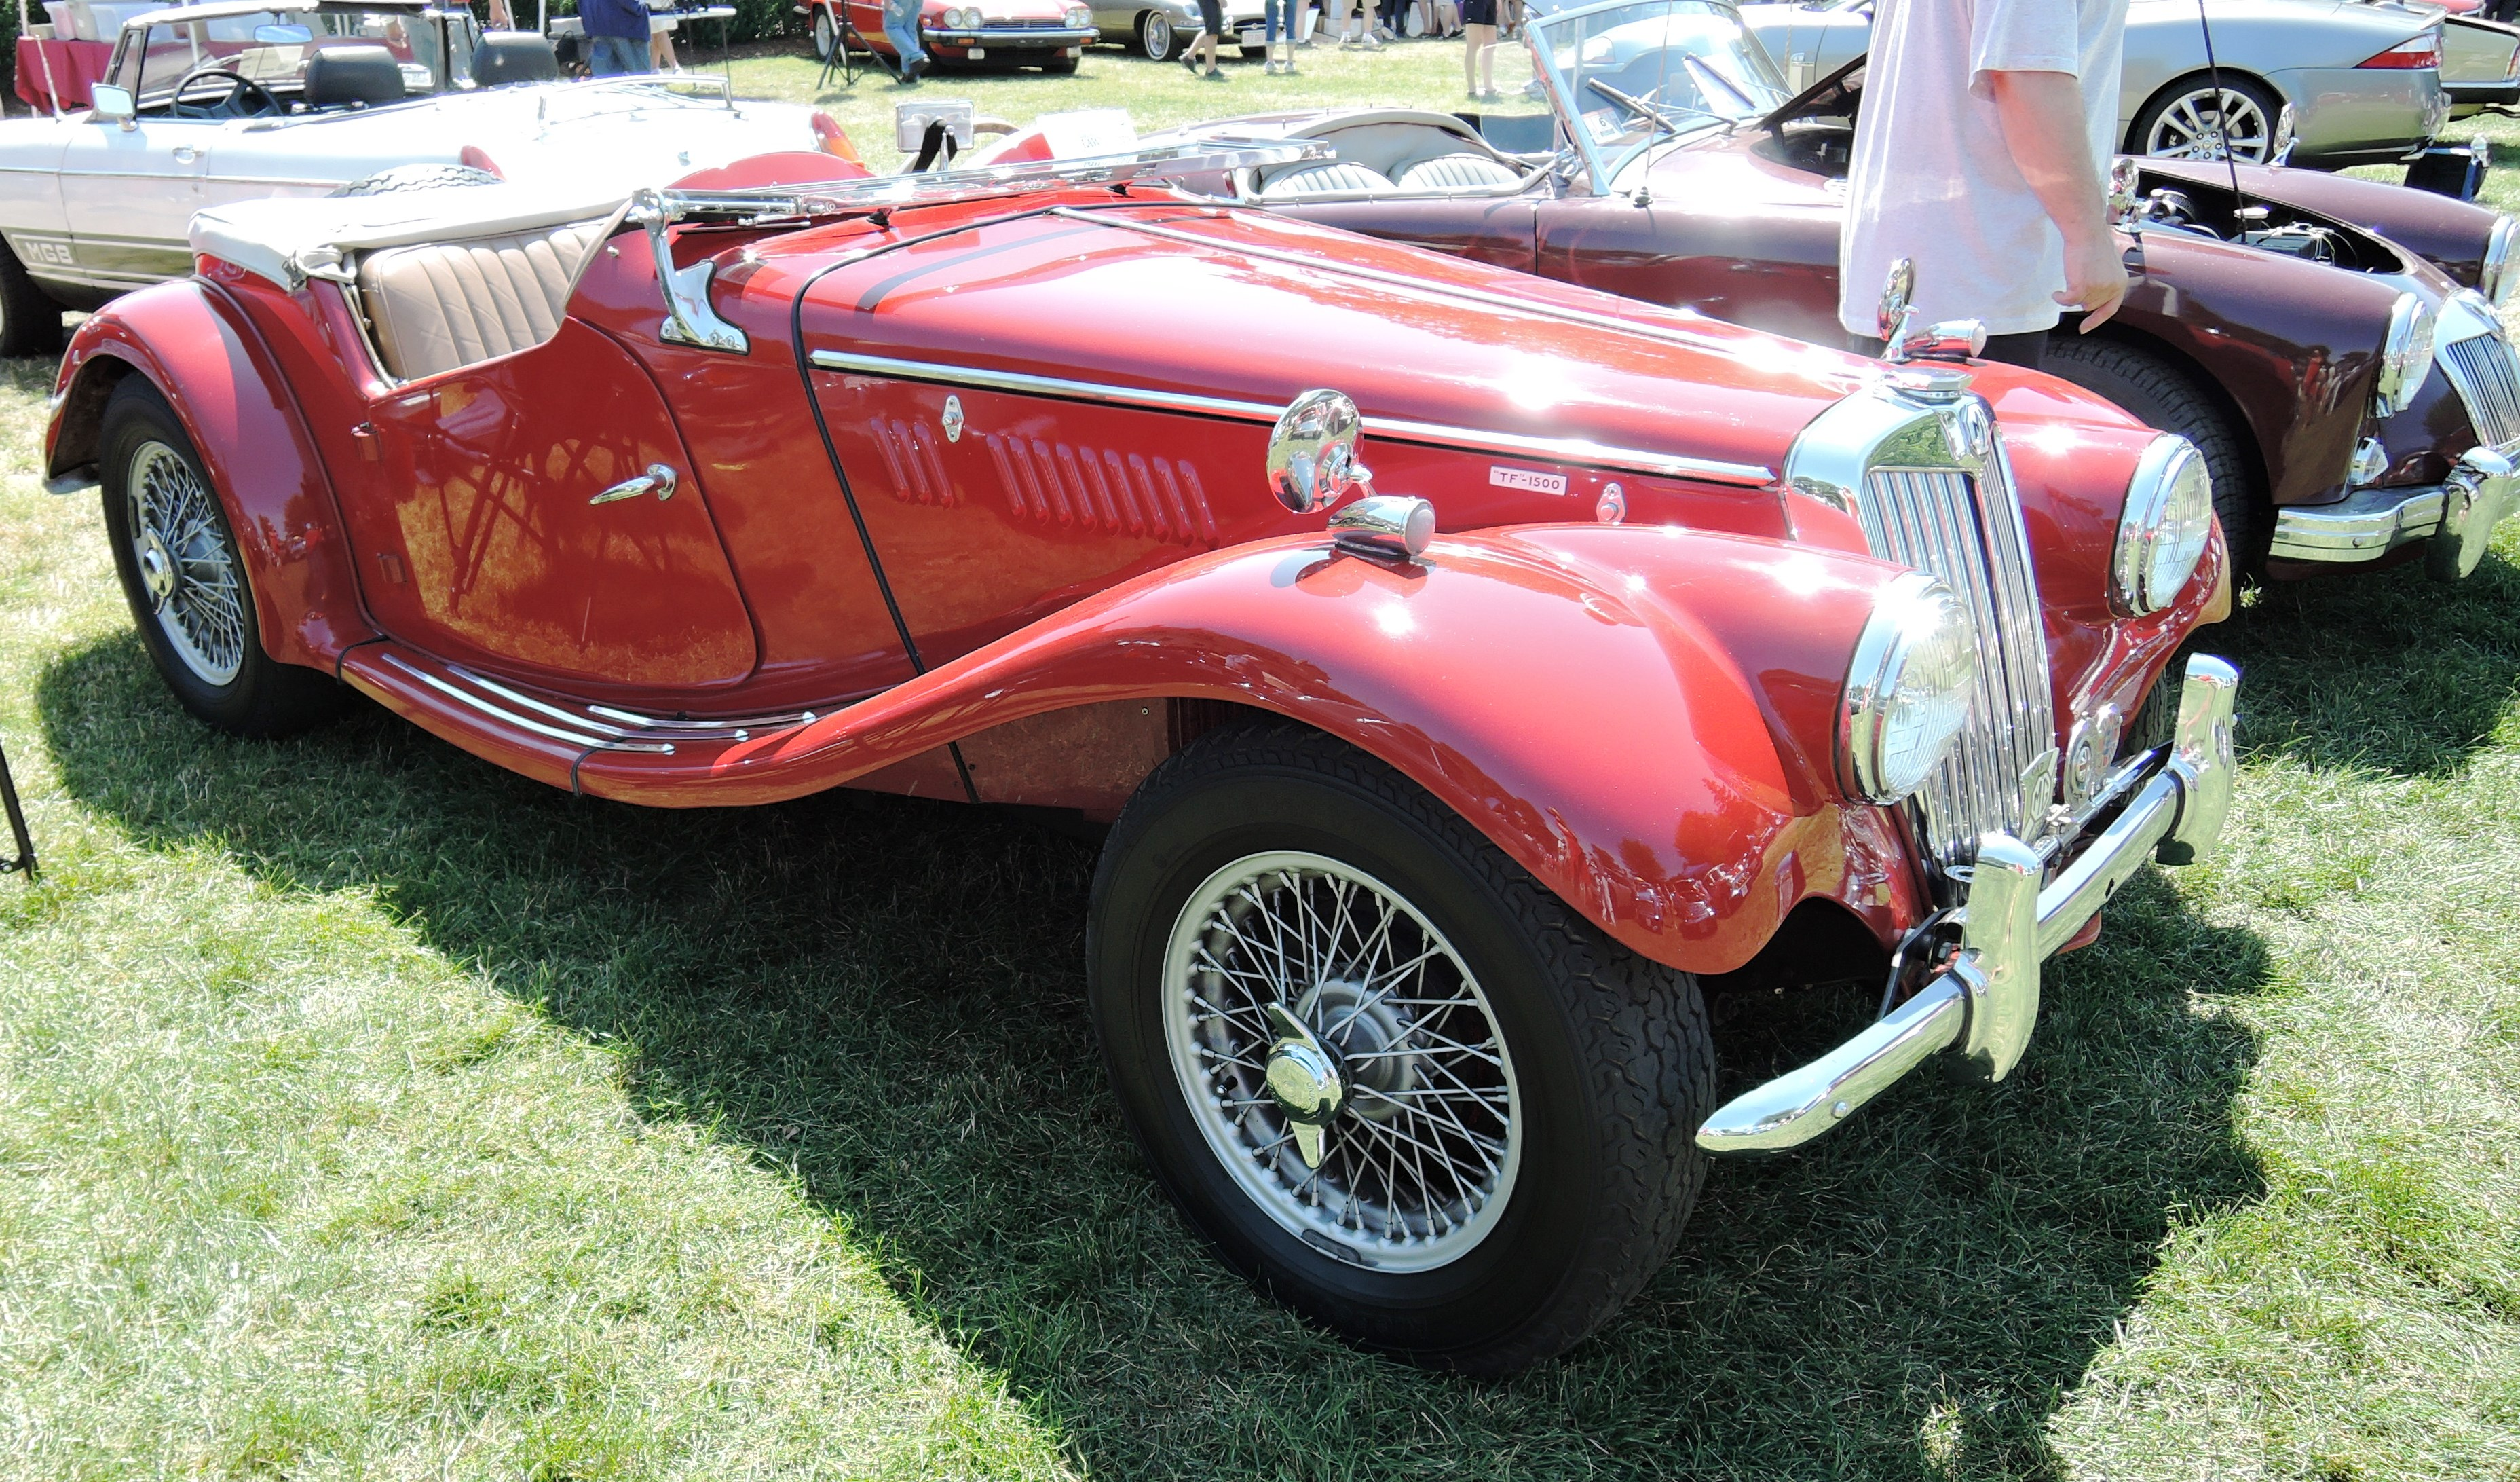 red 1955 MG TF - british car day